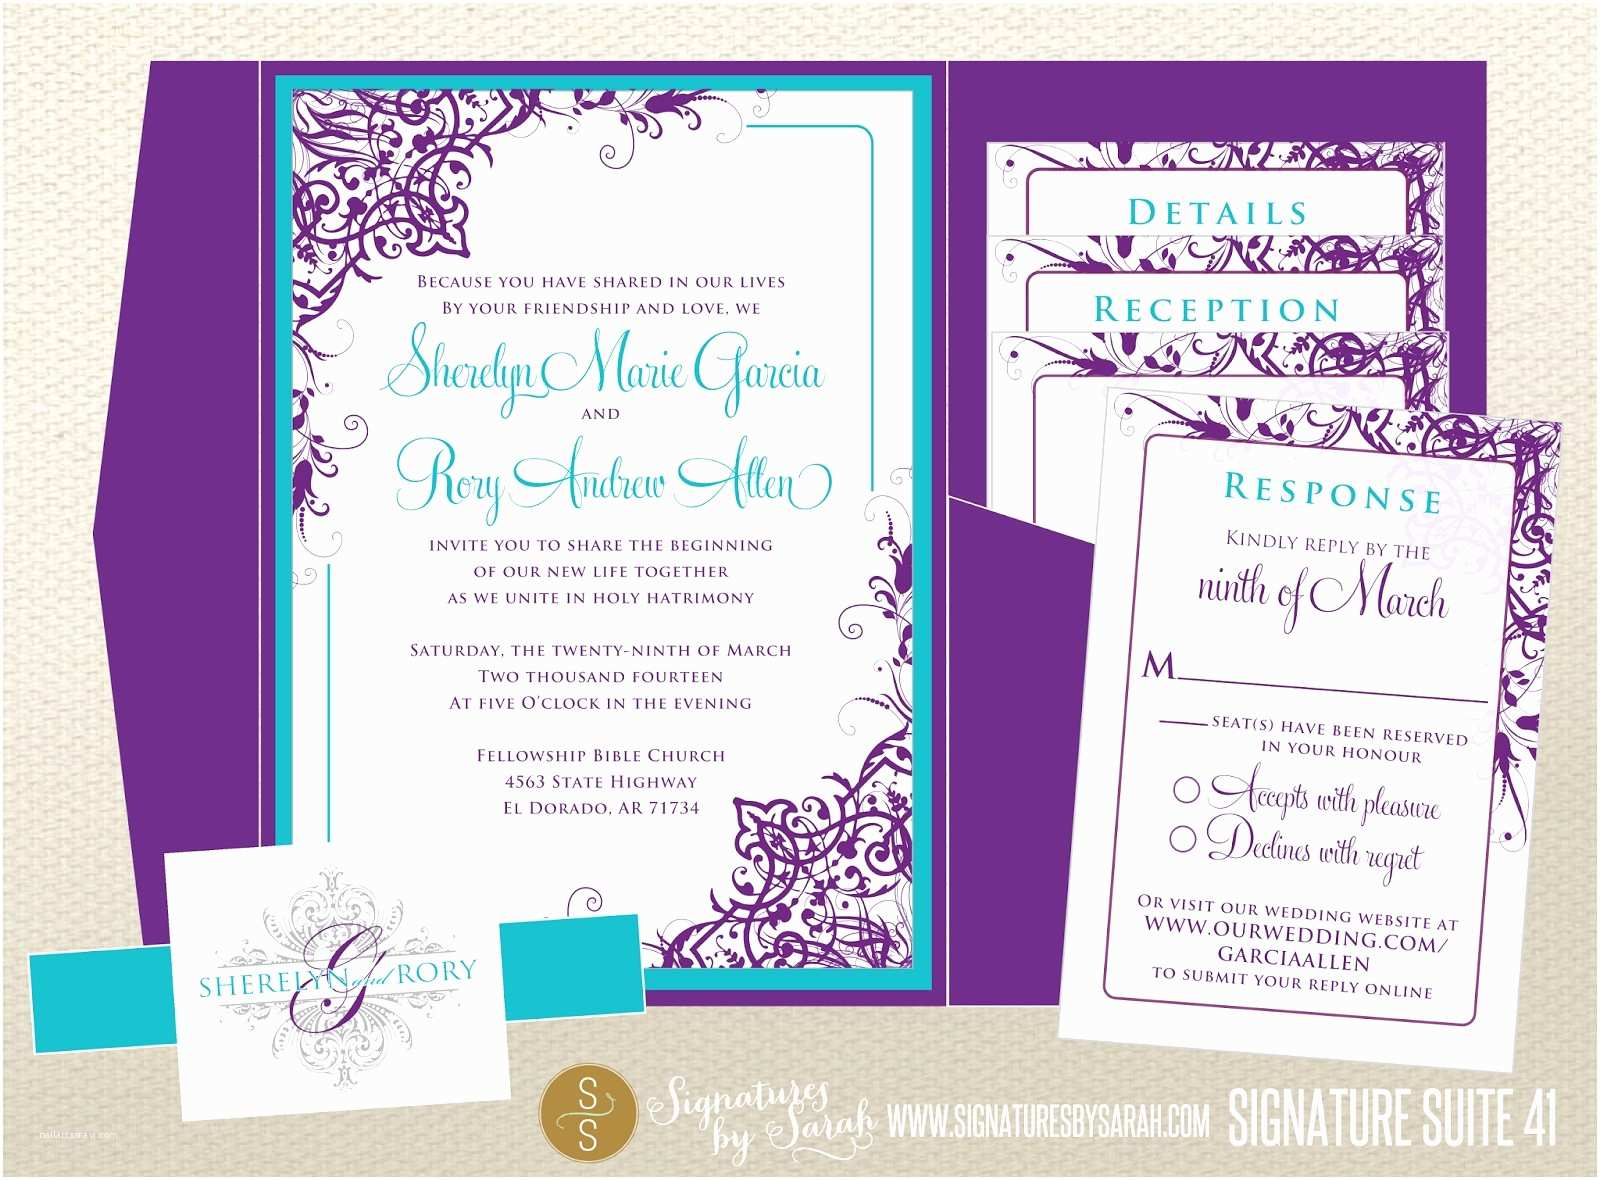 Turquoise and Hot Pink Wedding Invitations Turquoise Wedding Invitations Awesome Turquoise Wedding Invitations Turquoise Wedding